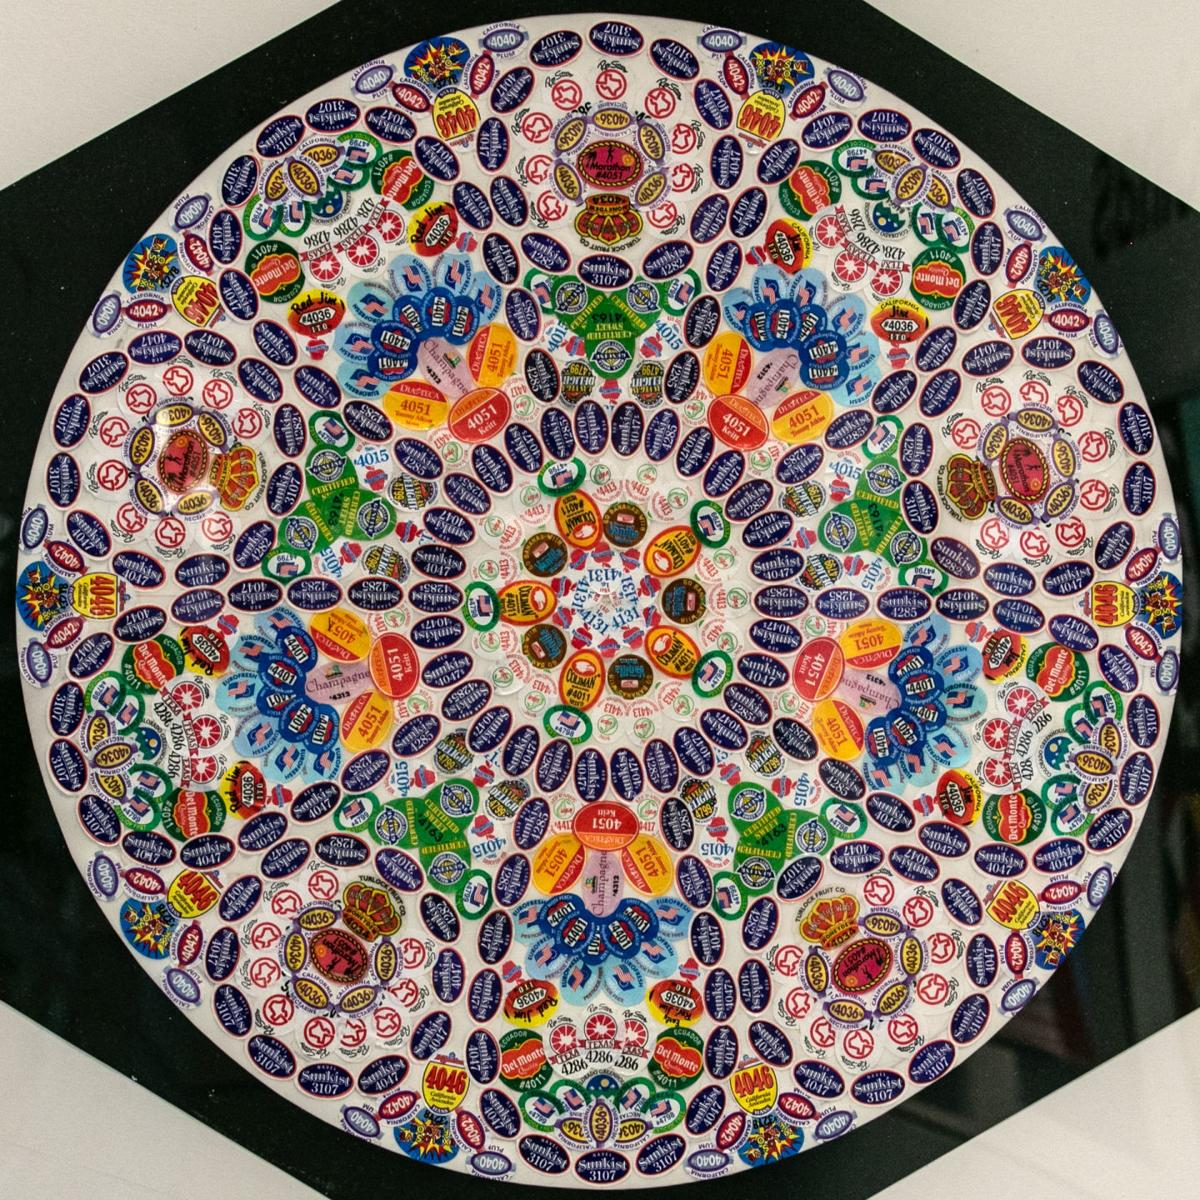 A circular, mandala-like collage made from fruit stickers that resembles a church window.